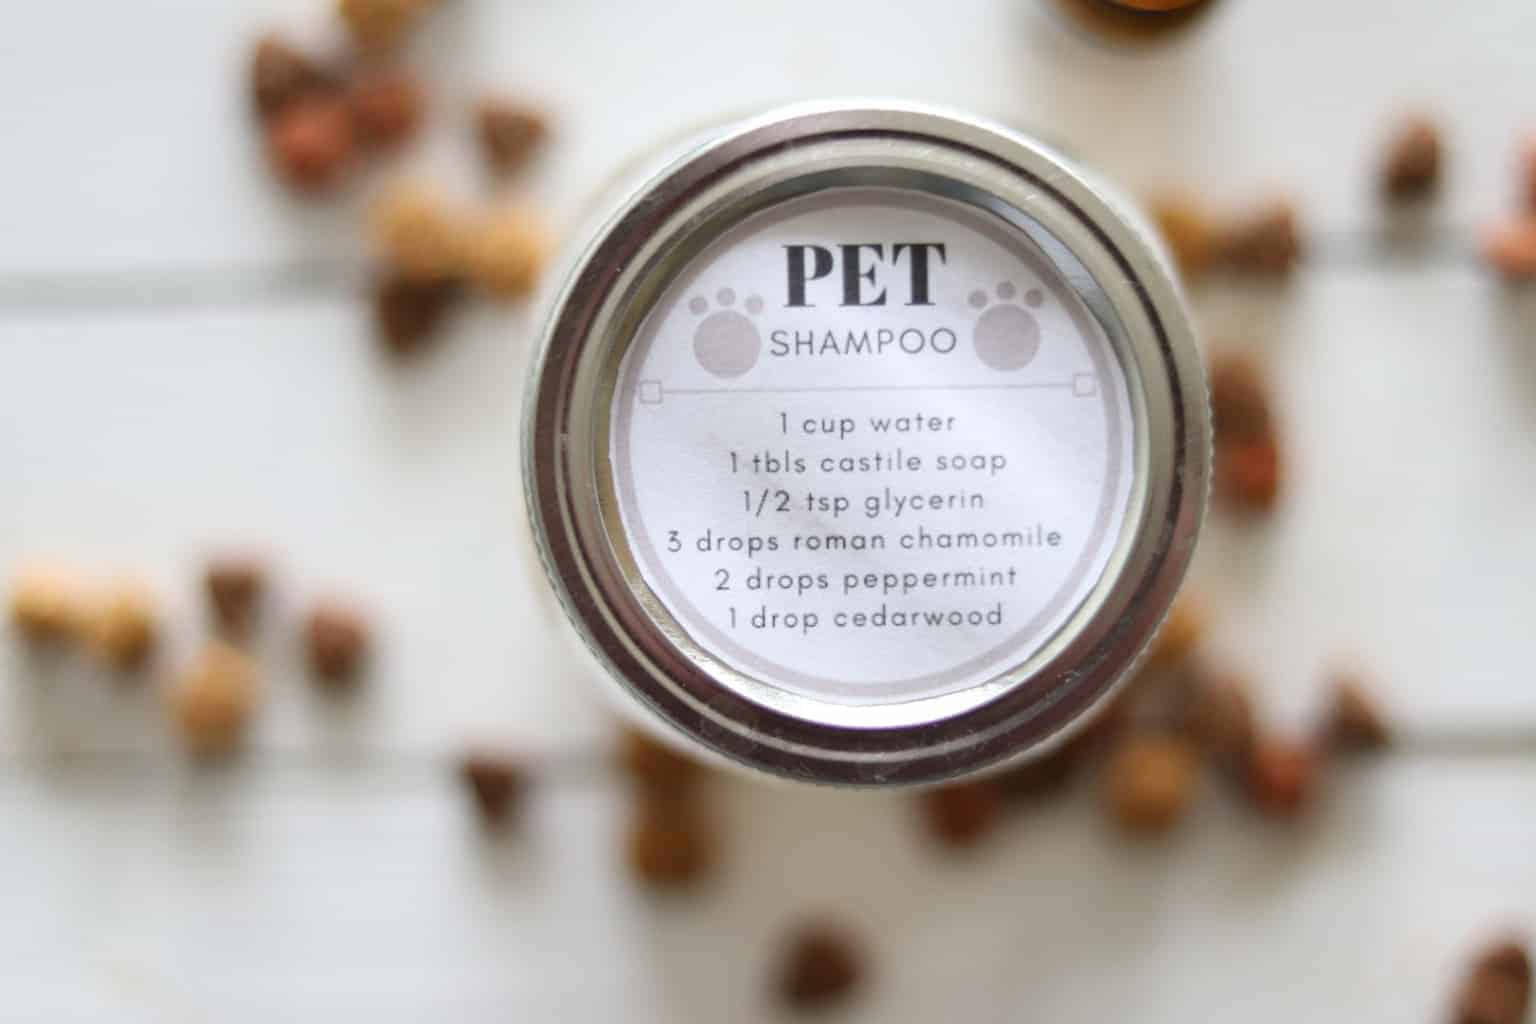 DIY pet shampoo recipe. All natural and toxic free, made with essential oils.